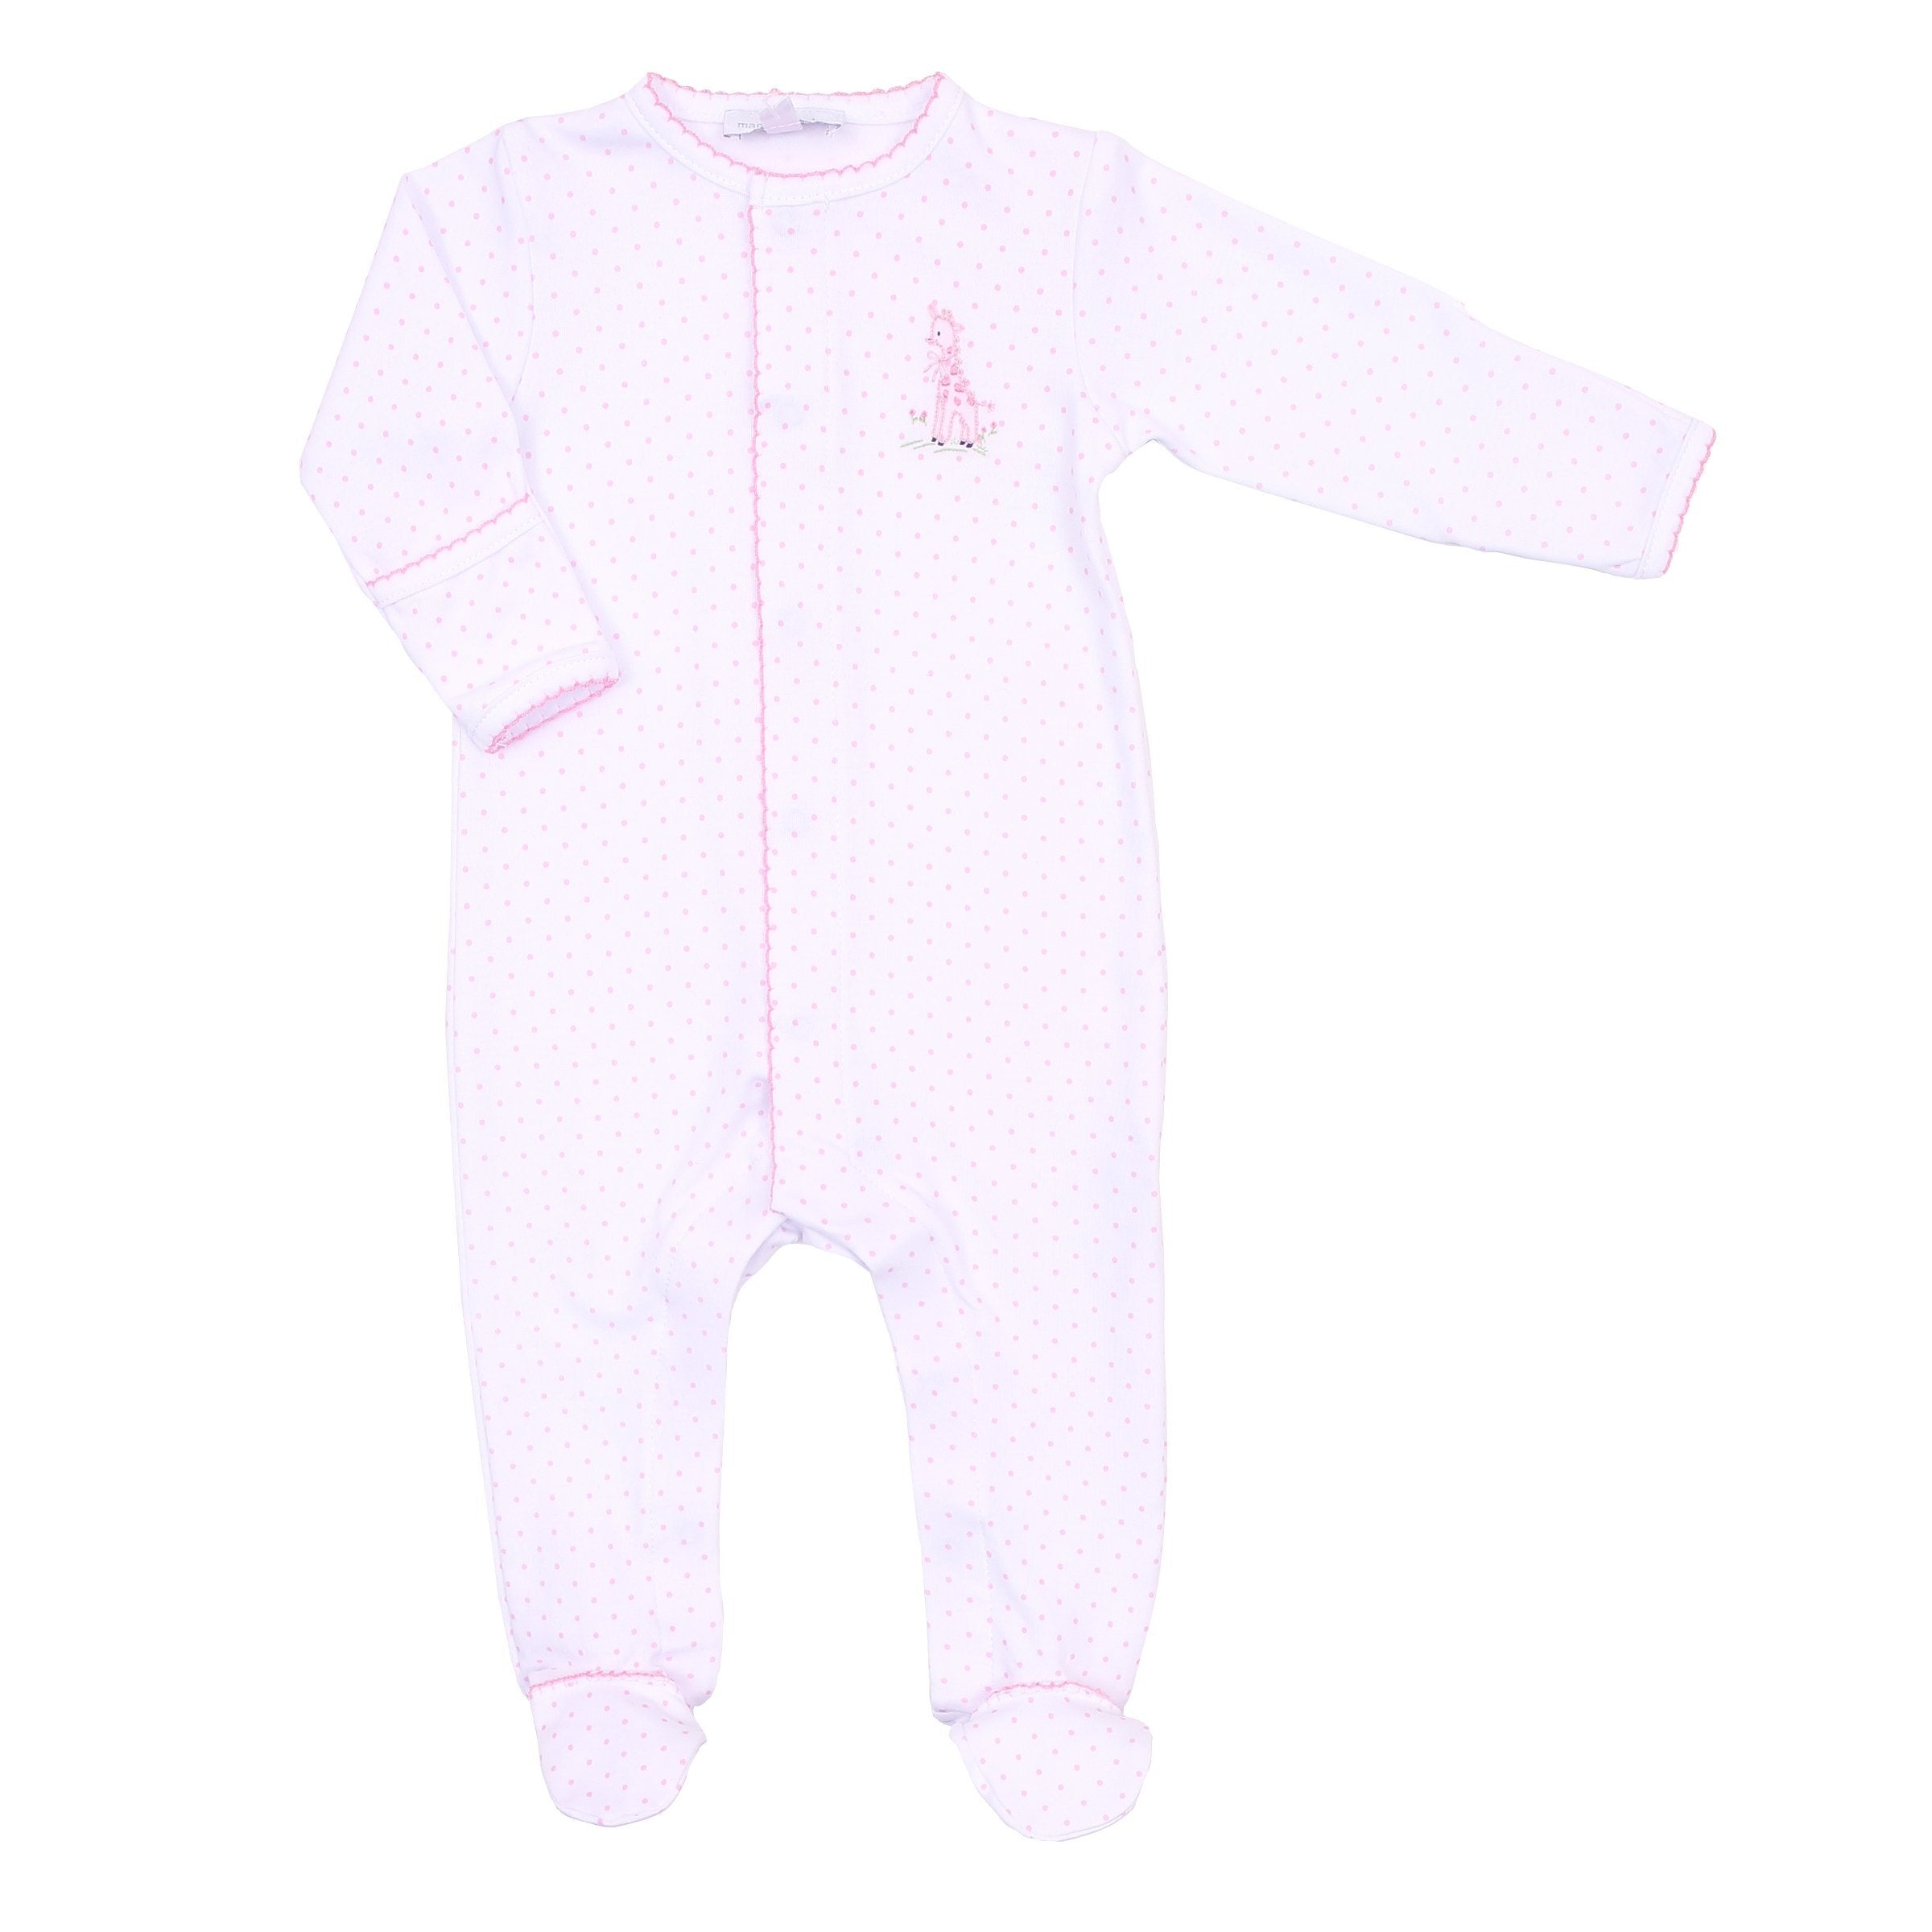 VINTAGE GIRAFFE - EMBROIDERED BABY GROW (PINK)